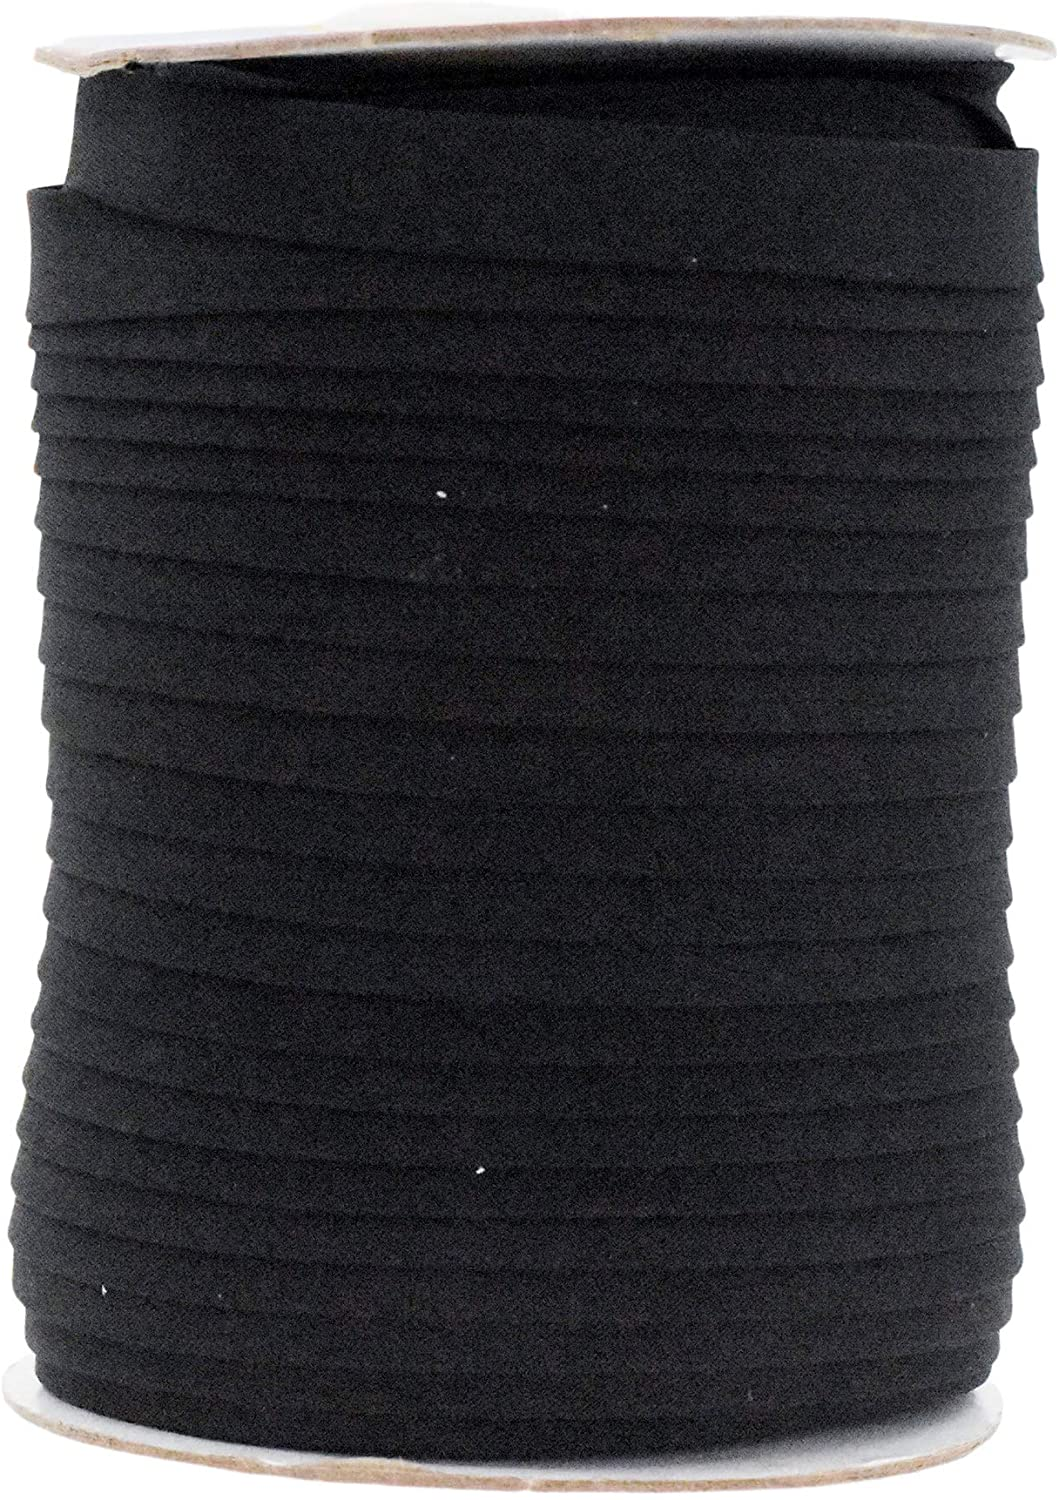 Double Fold Bias Tape for Sewing, Seaming, Binding, Hemming, Piping, Quilting; by Mandala Crafts (1/2 Inch 55 Yards, Black)